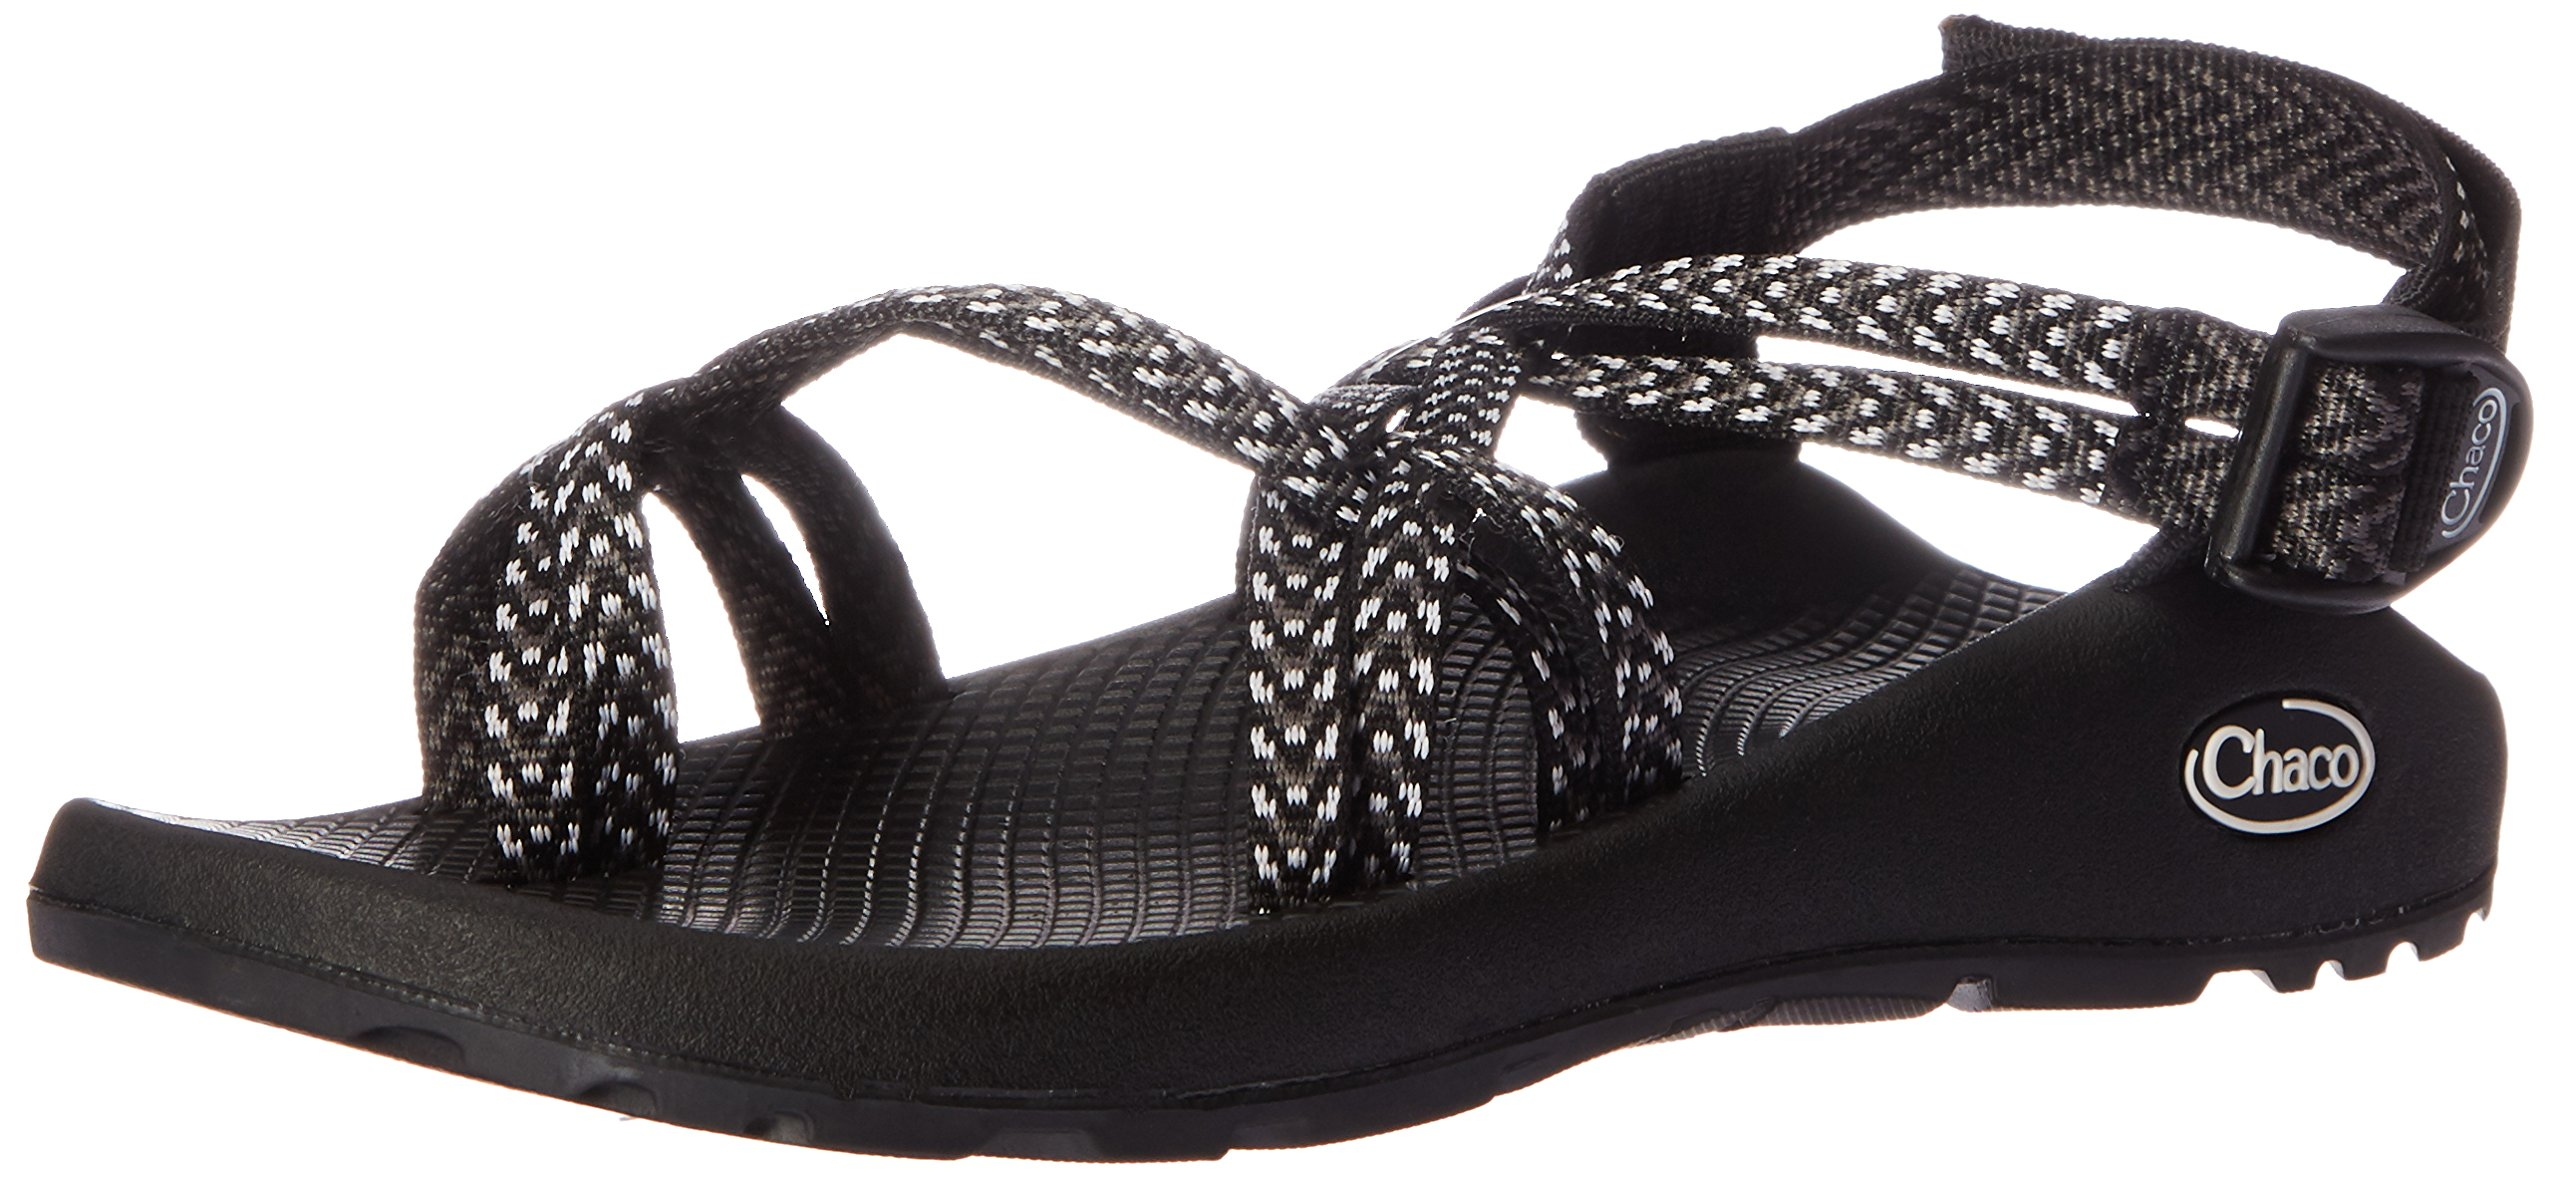 Chaco Women's ZX2 Classic Athletic Sandal, Boost Black, 7 M US